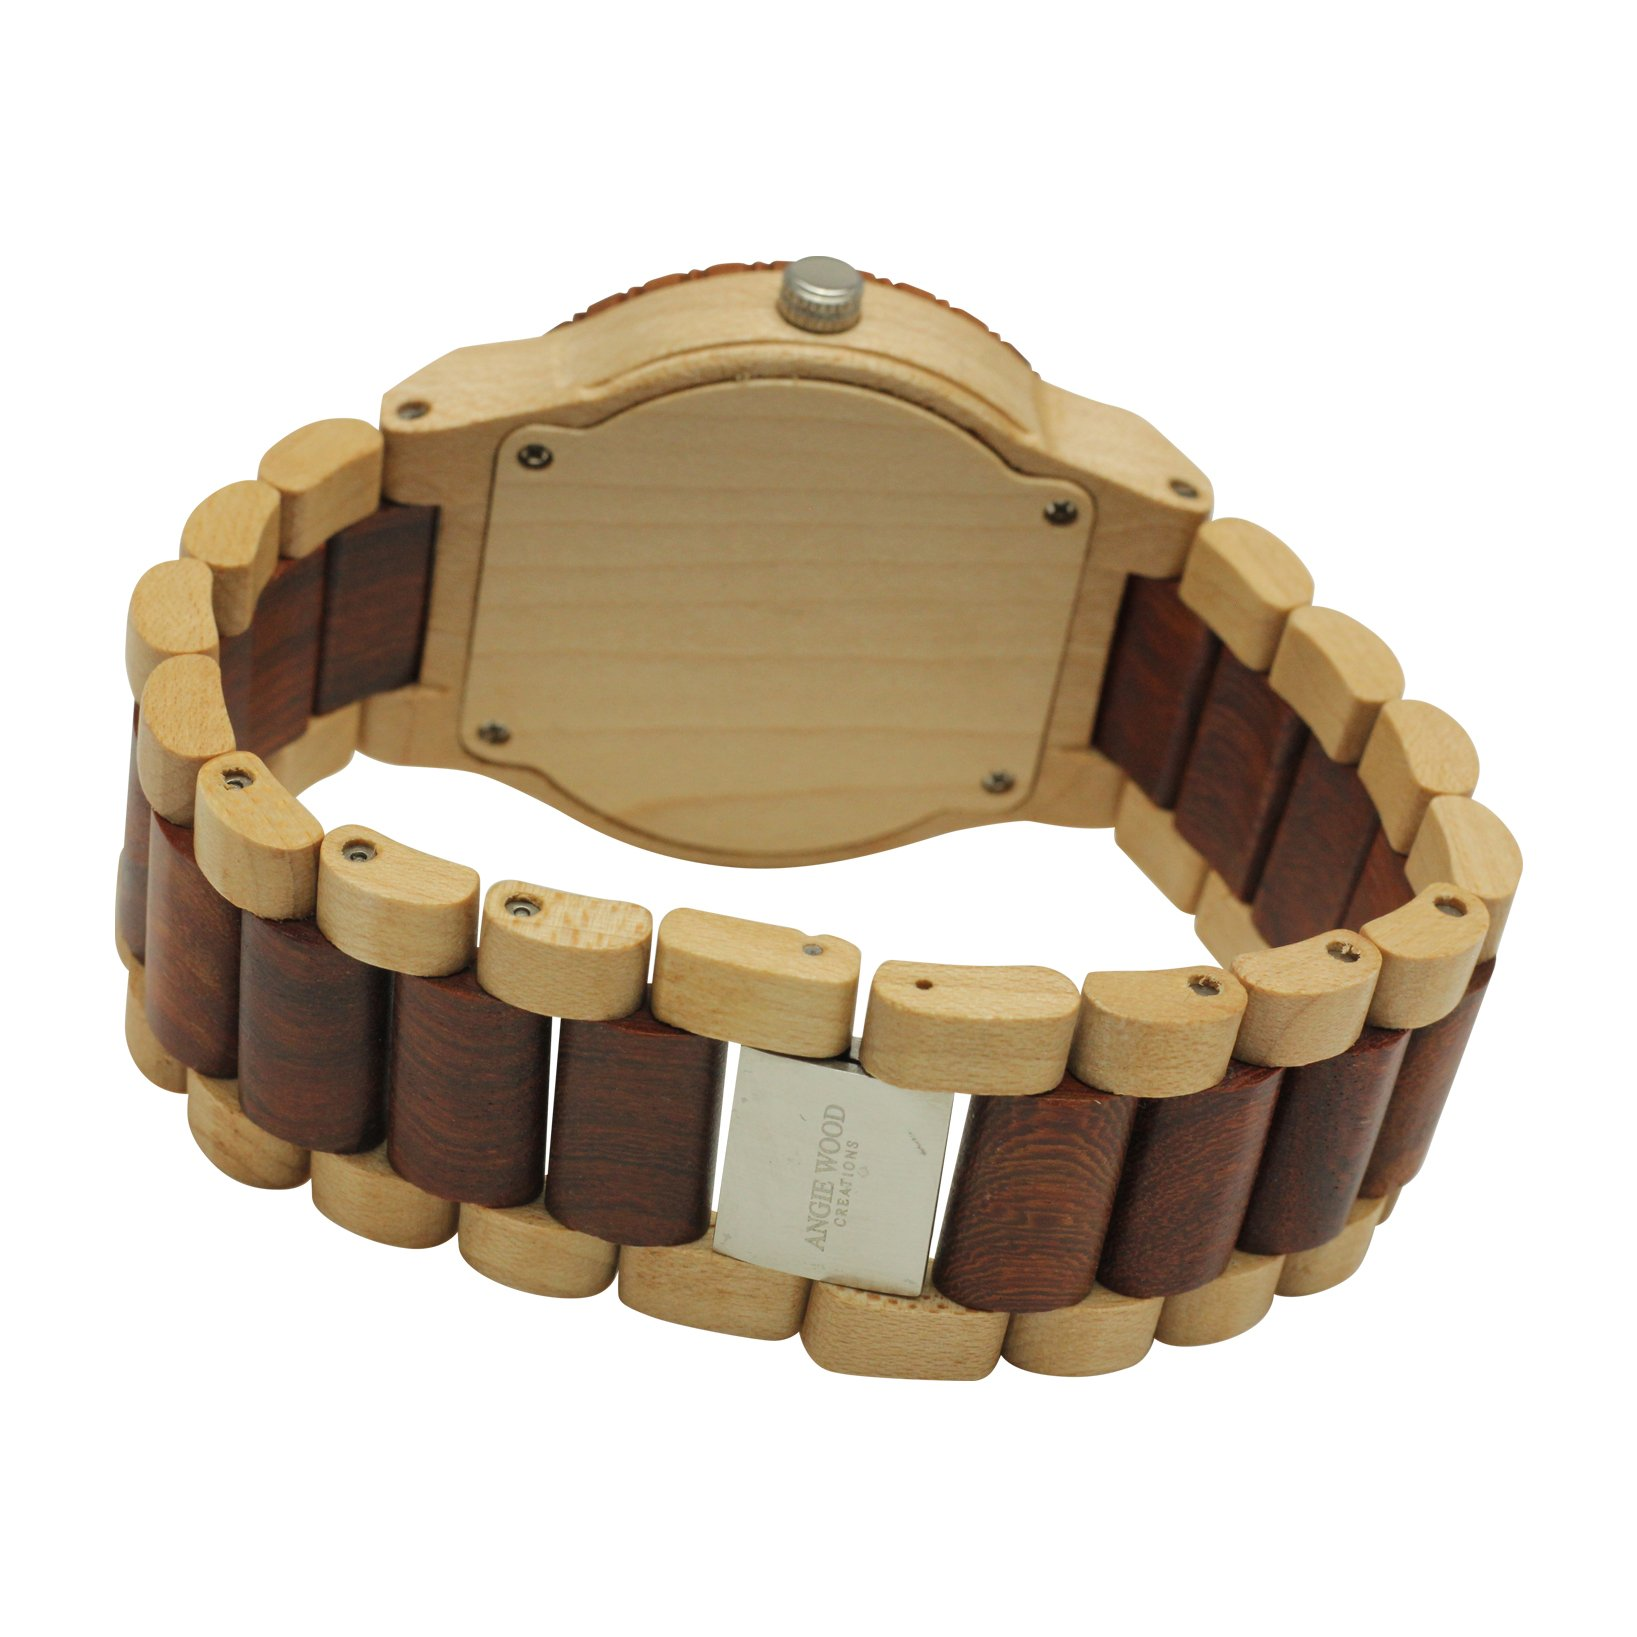 Angie Wood Creations Maple Men's Watch With Maple and Red Sandalwood Bracelet - image 2 de 7